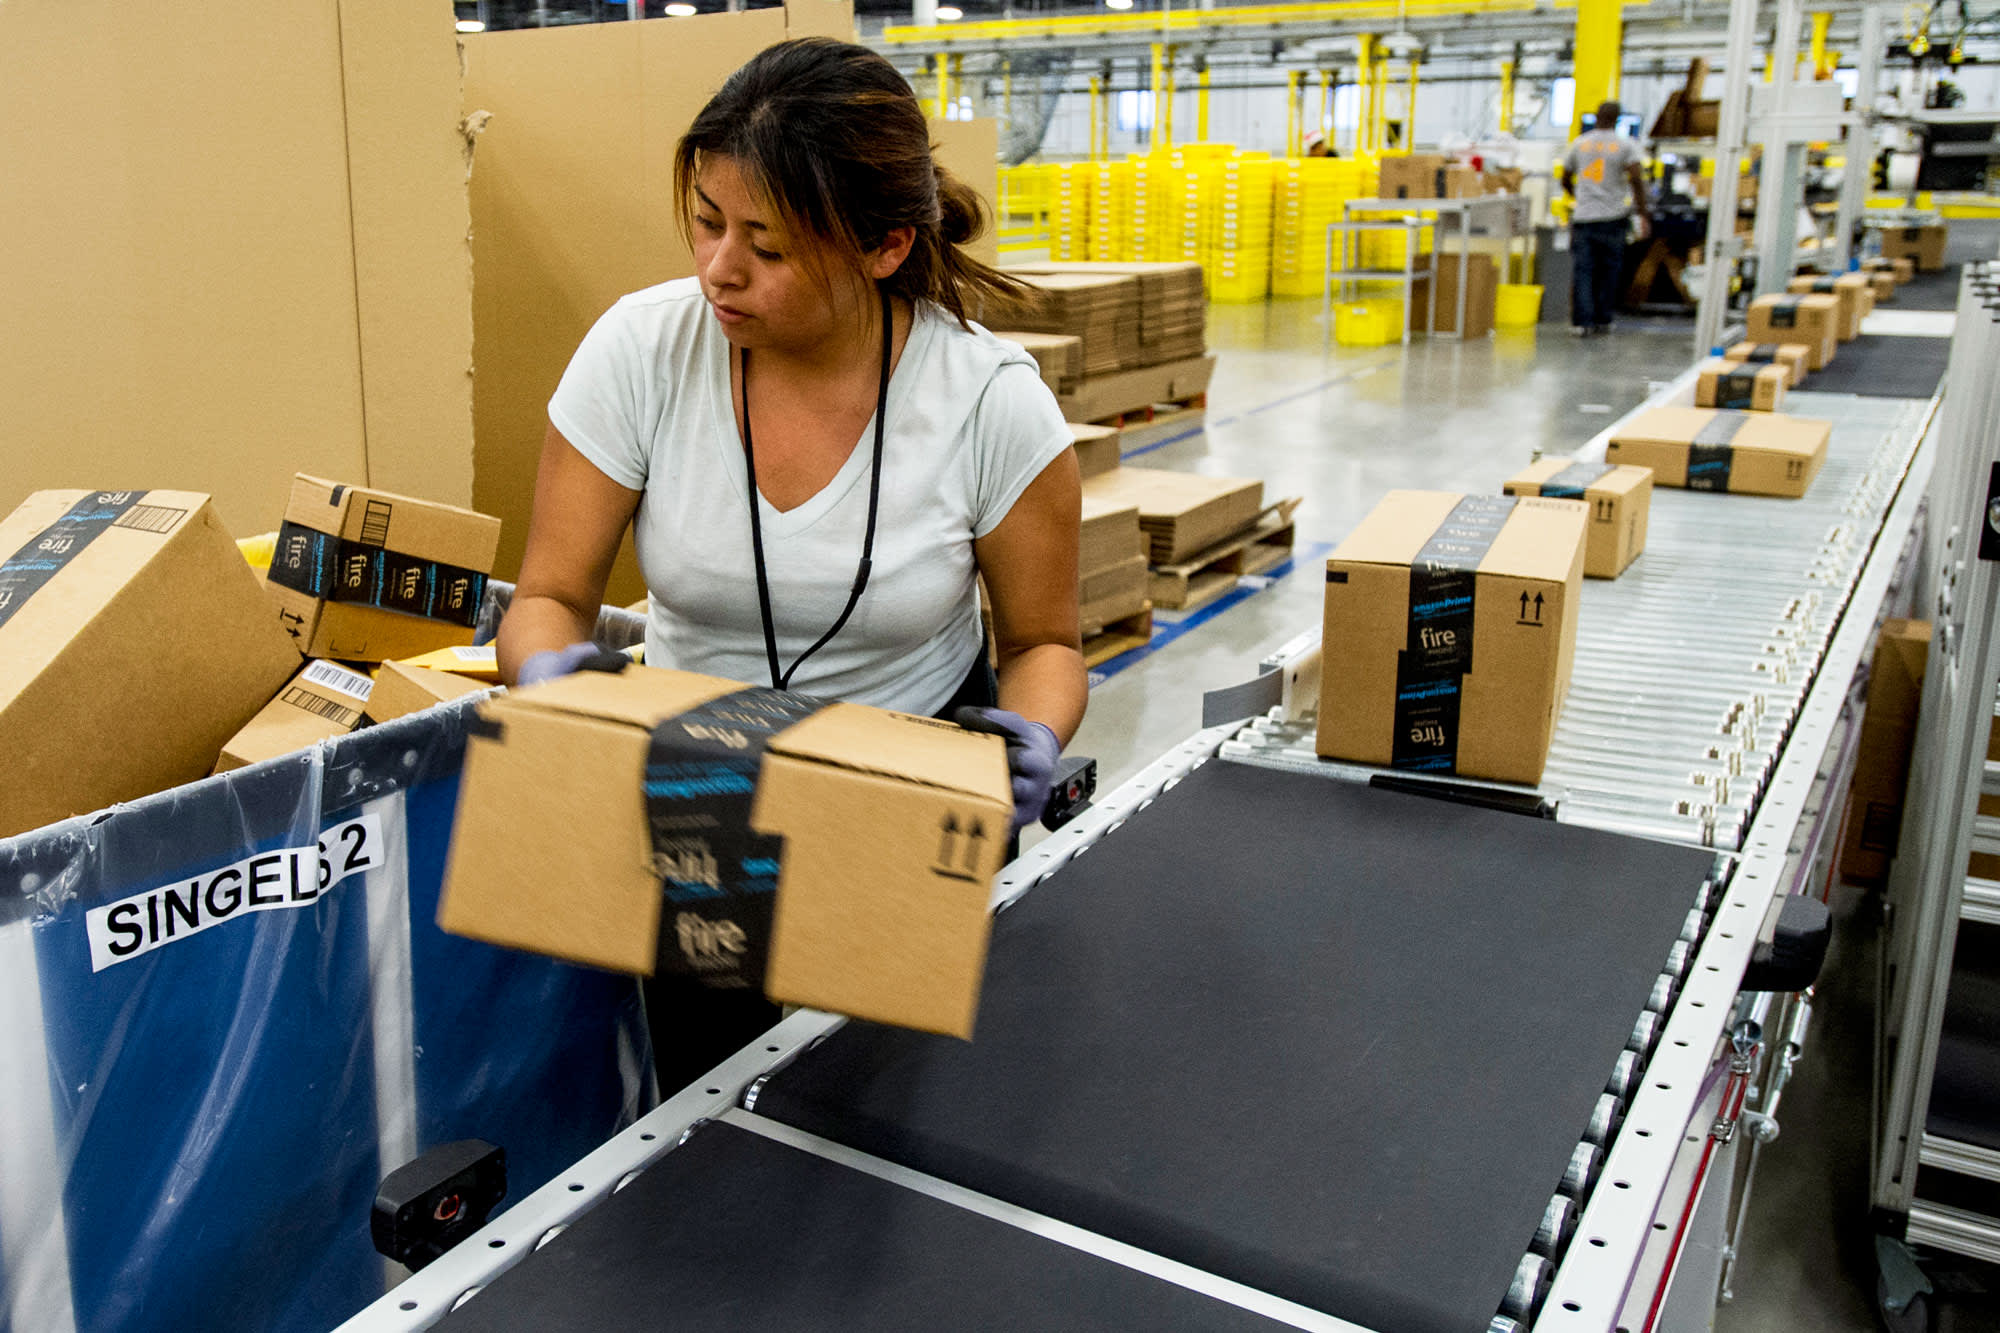 An Amazon.com employee lifts a box from a conveyor at the company's fulfillment center in Tracy, California.